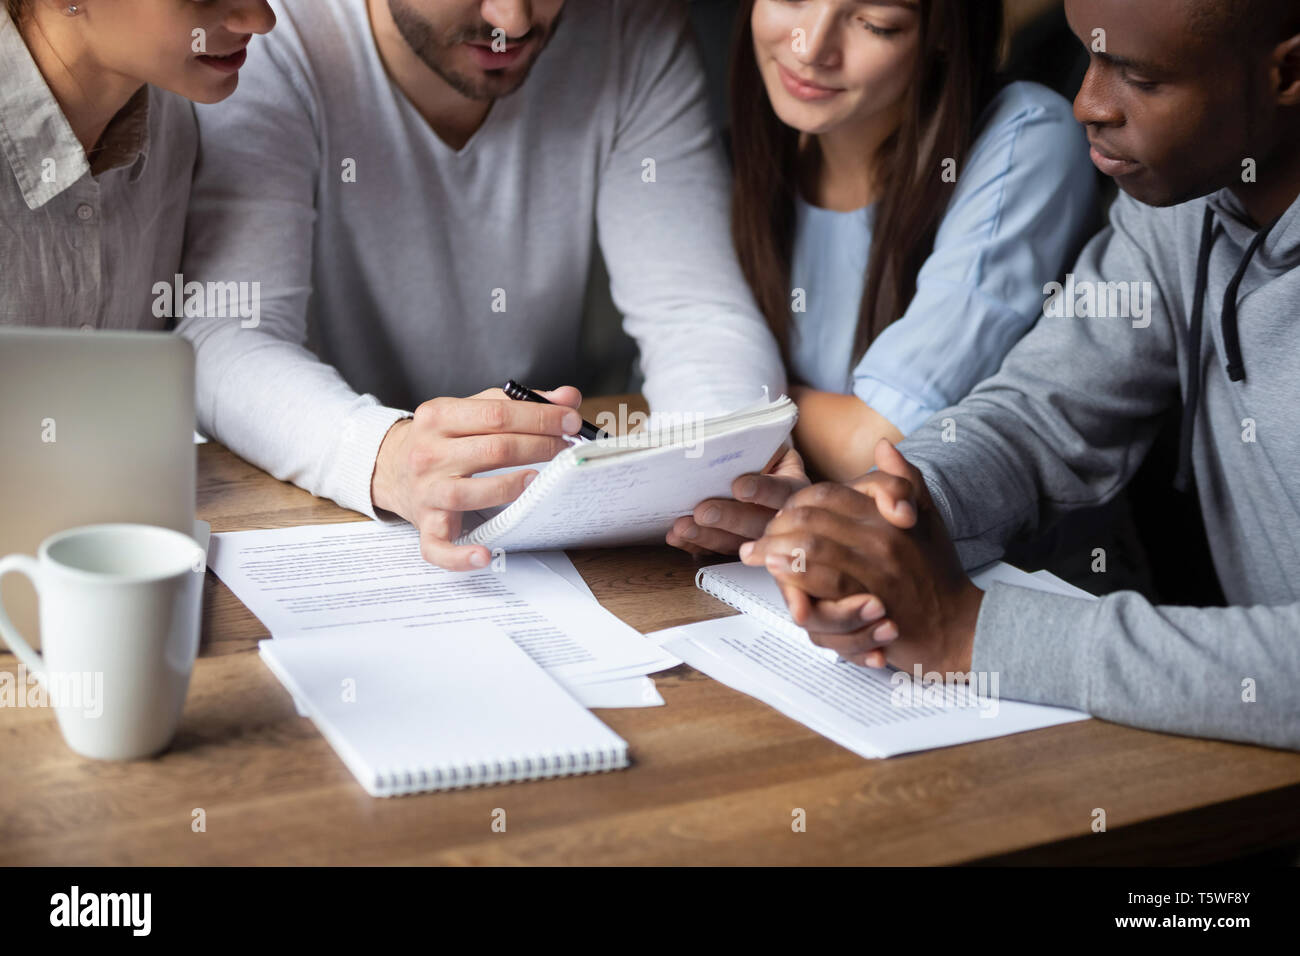 Different ethnicity millennial teammates sitting at table study together - Stock Image